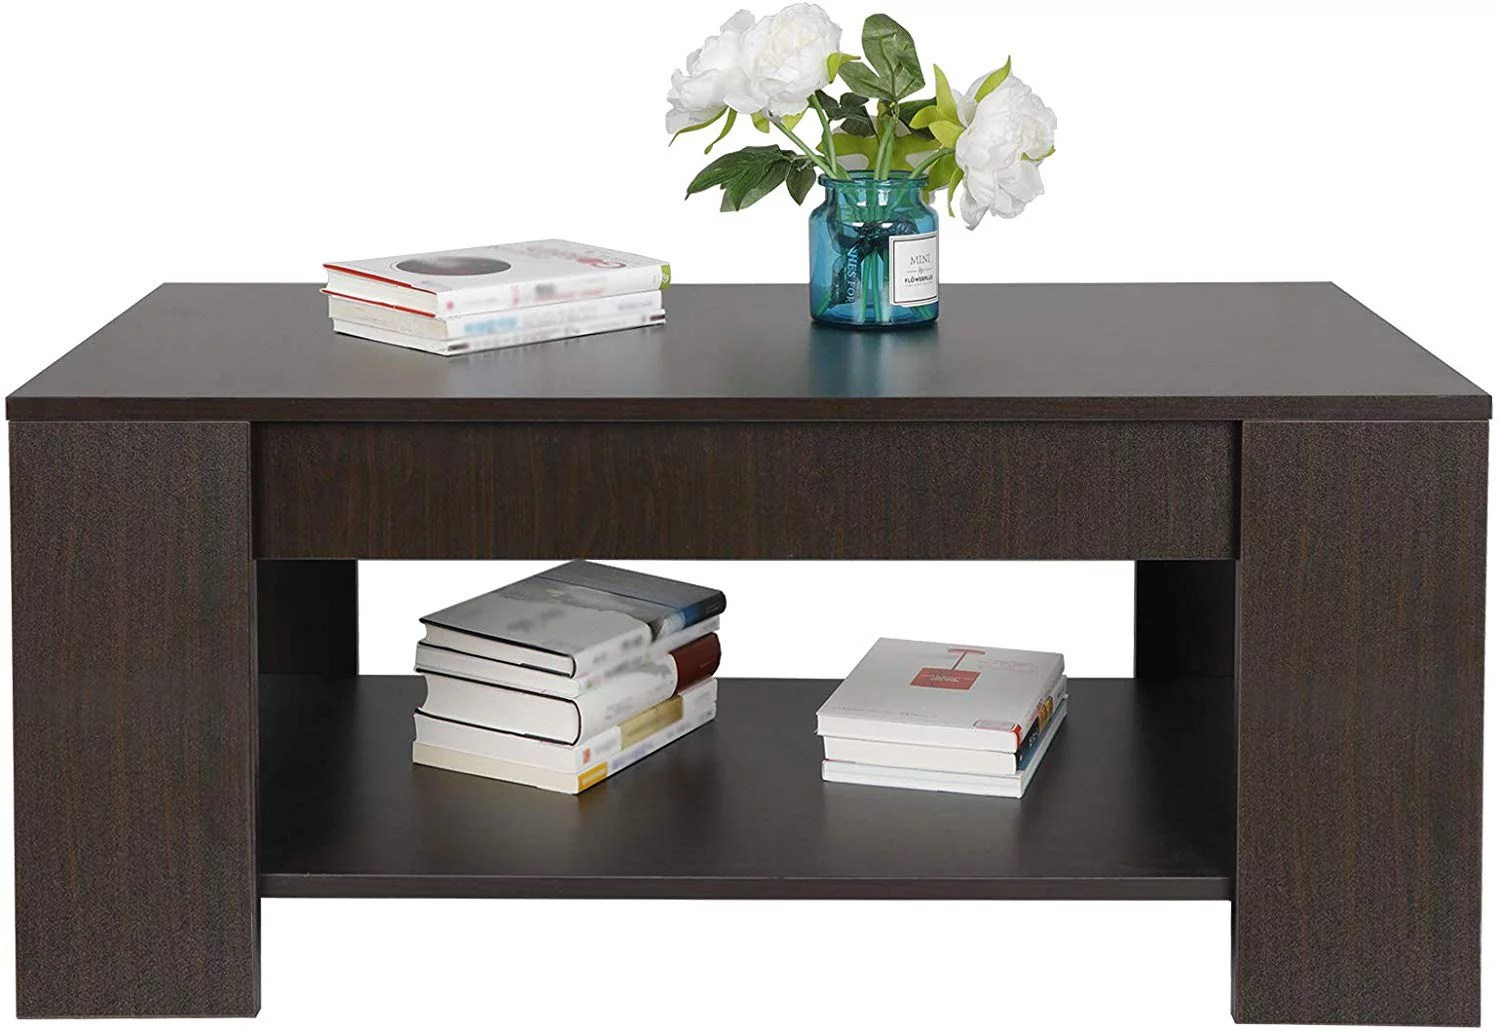 zenstyle lift top coffee table hidden storage cabinet compartment long lasting brown finish